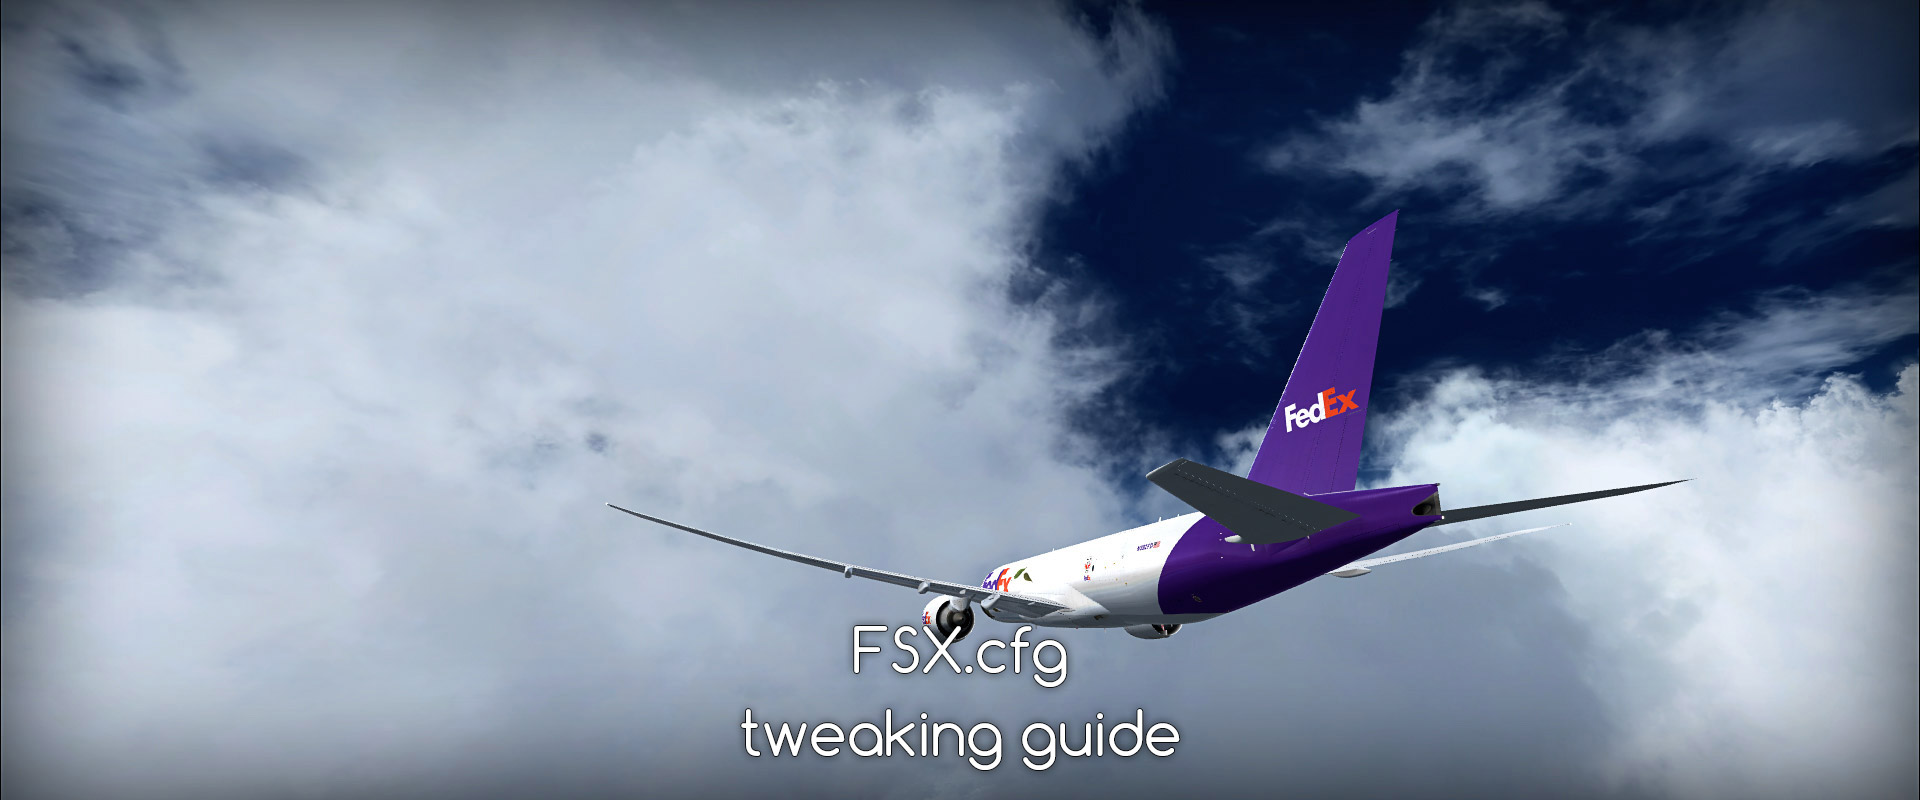 FSX.cfg - tweak guide